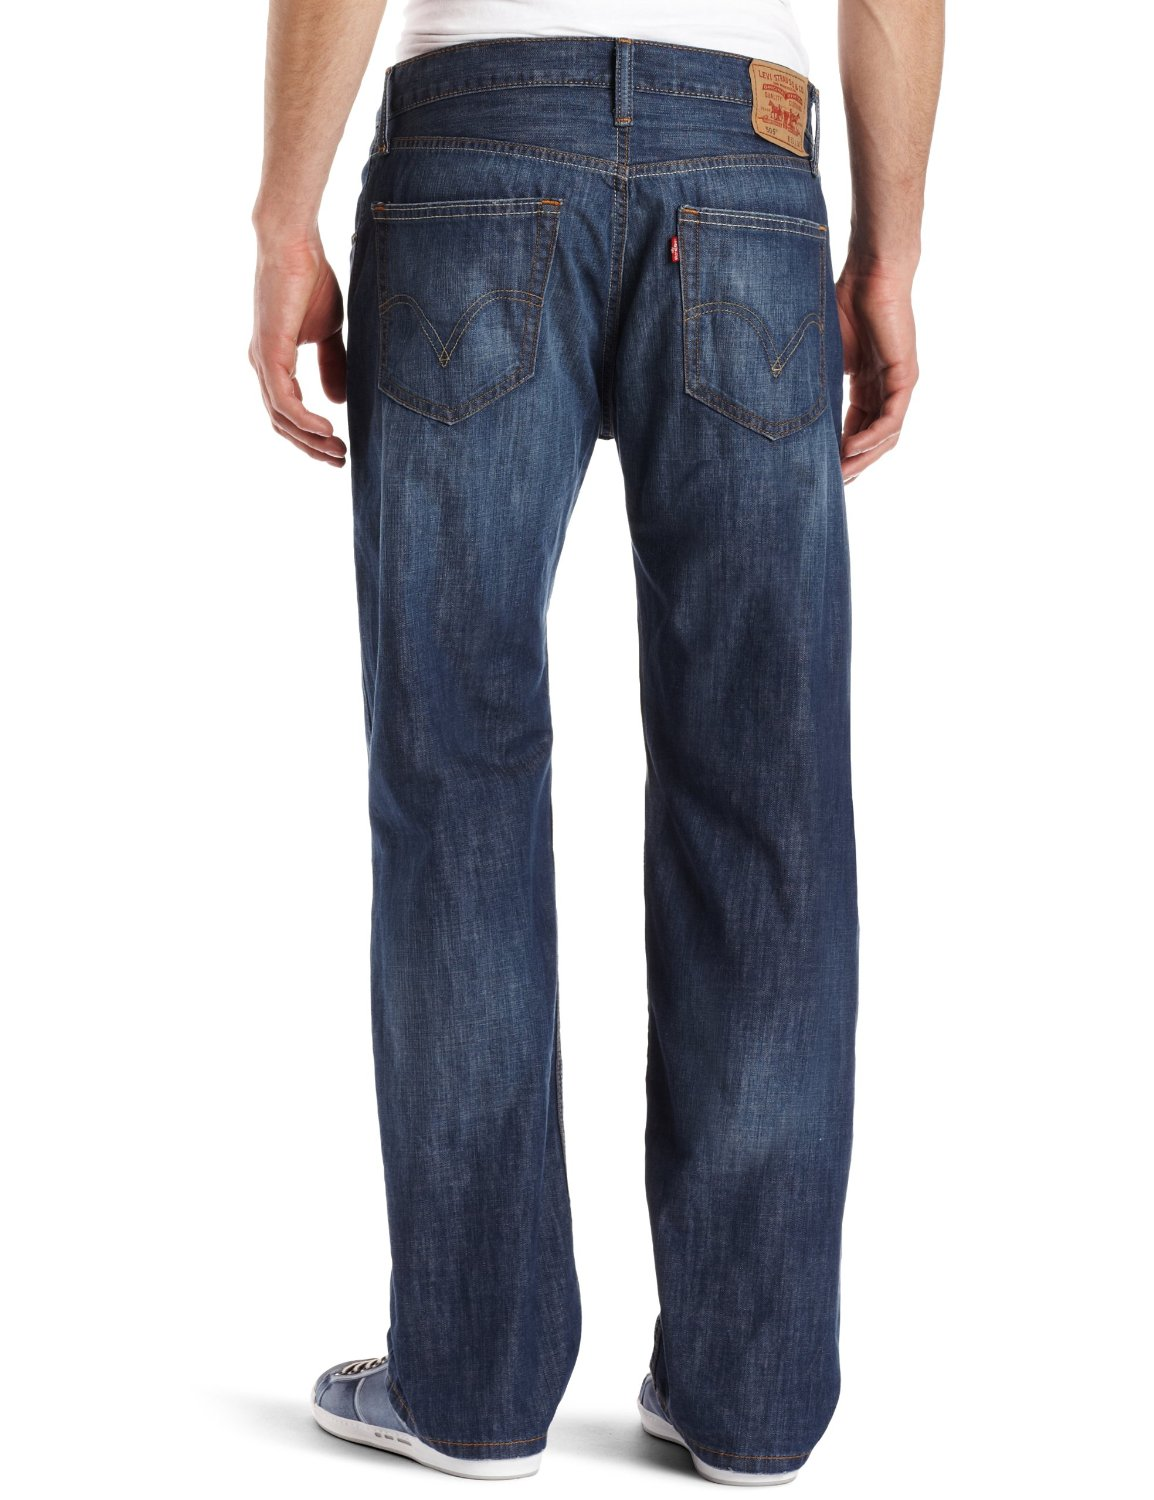 Example Photos for Levis 505 Straight Fit Light Weight Trouser Jean